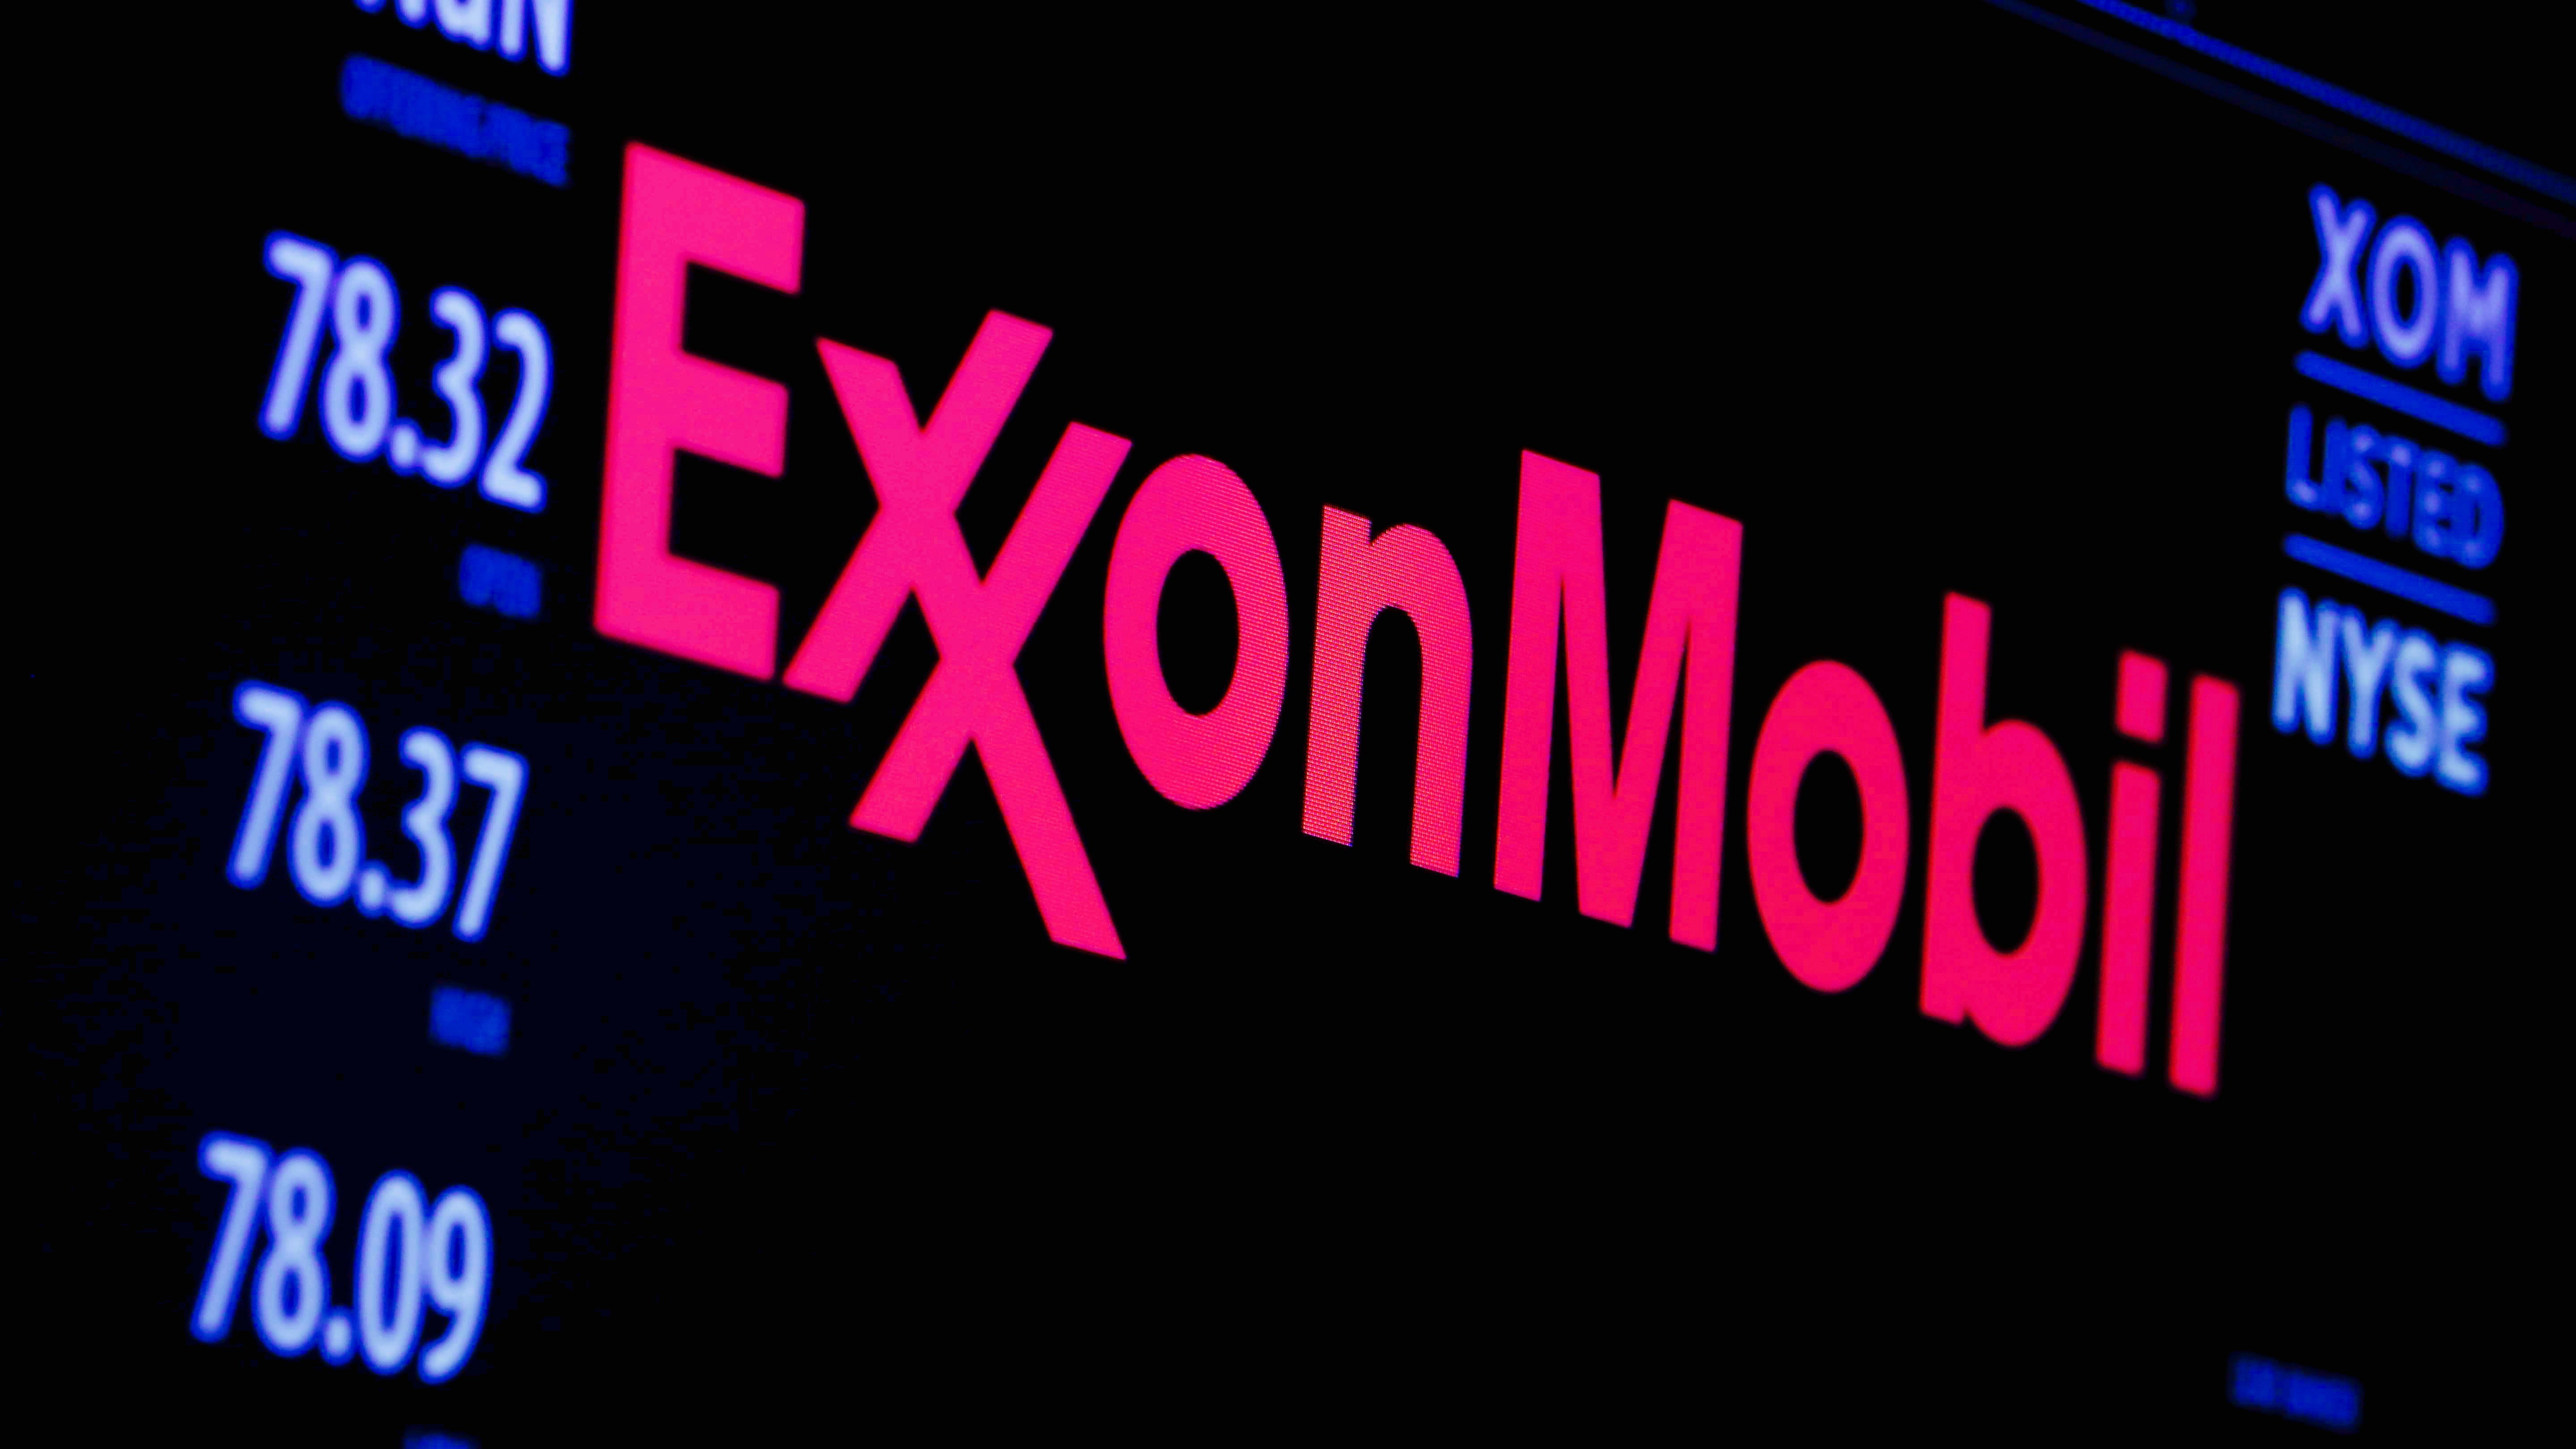 ExxonMobil says government climate change lawsuits are a